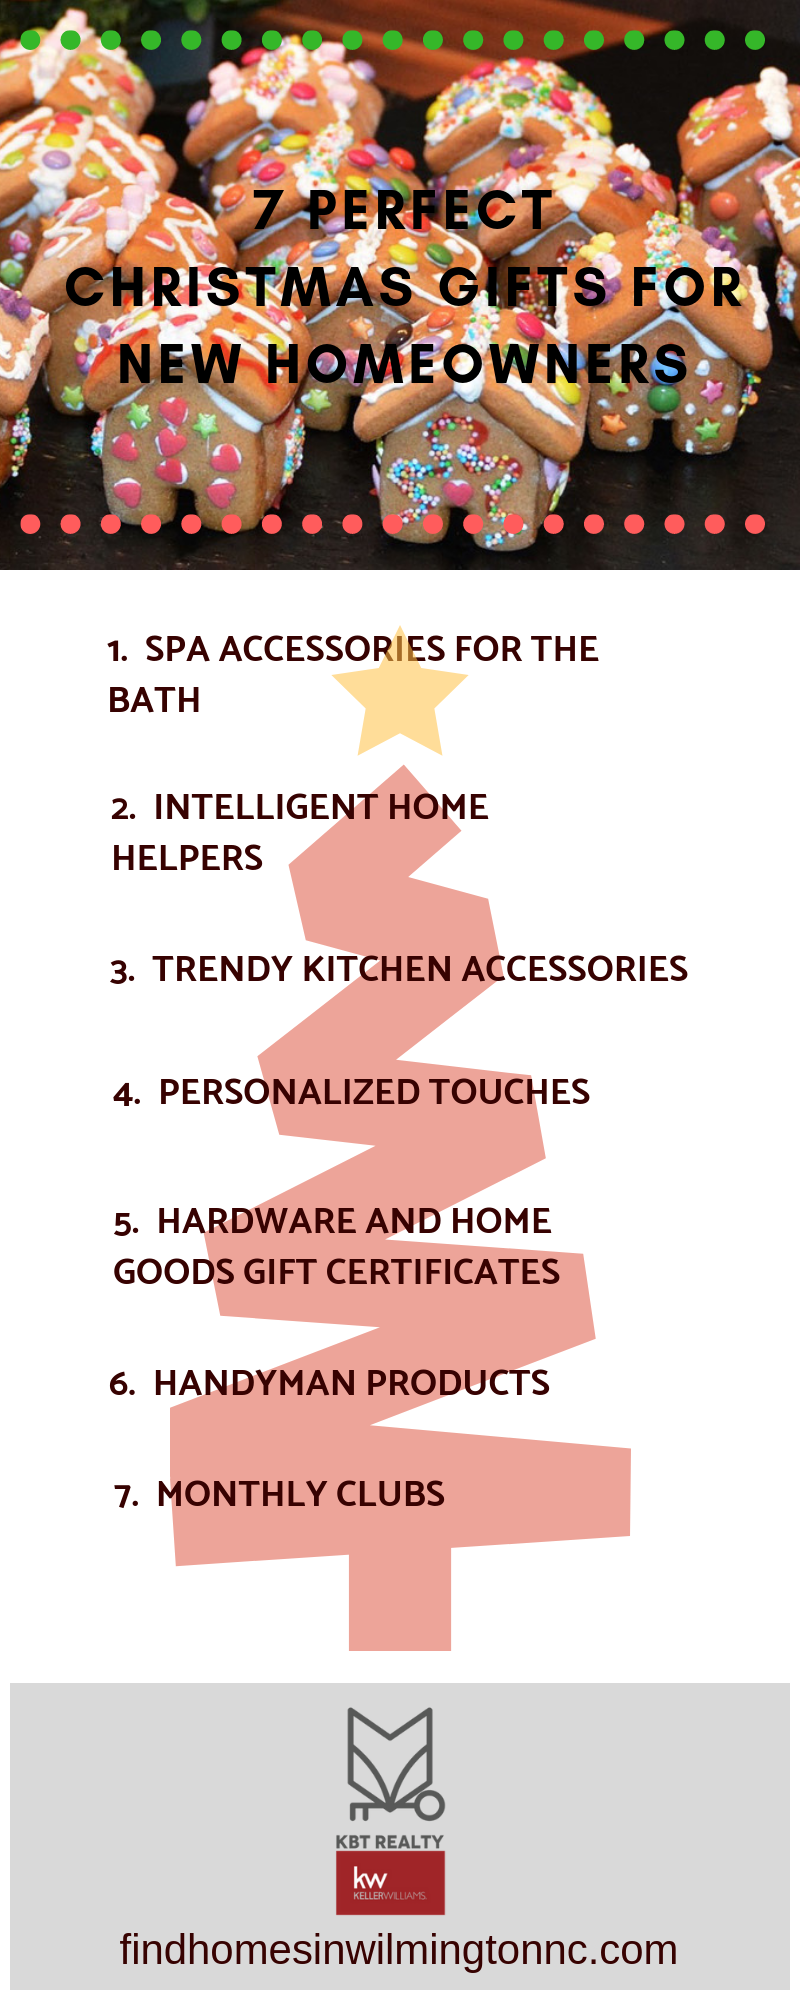 Christmas gifts for new homeowners infographic.png